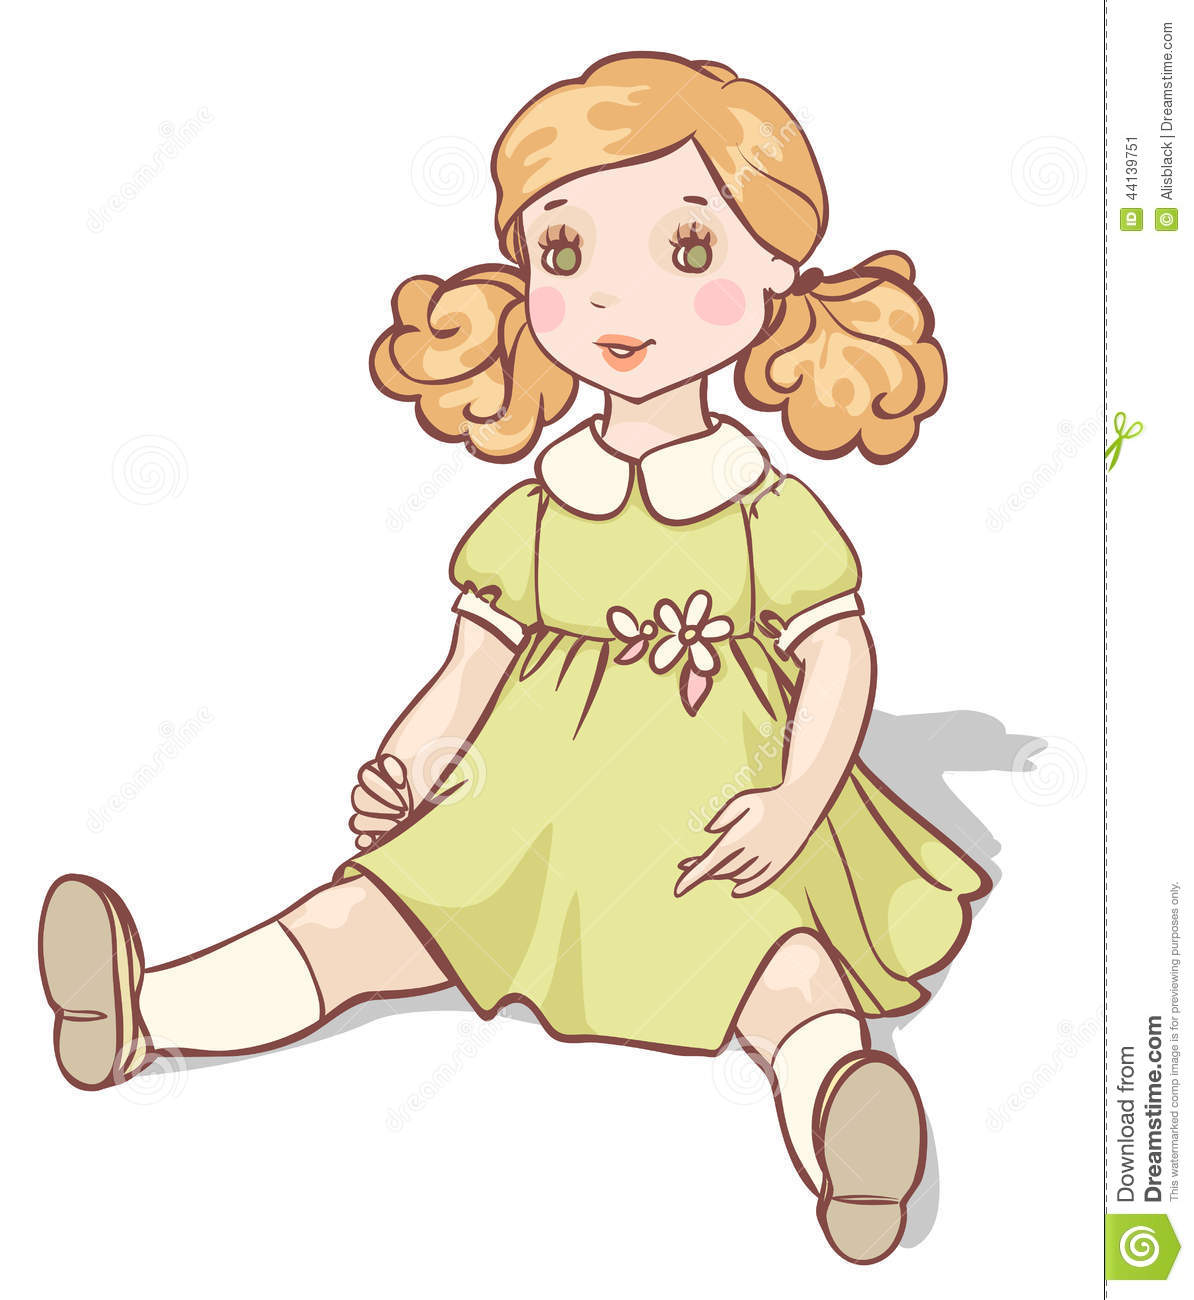 Cartoon Doll In A Green Dress Stock Vector - Image: 44139751